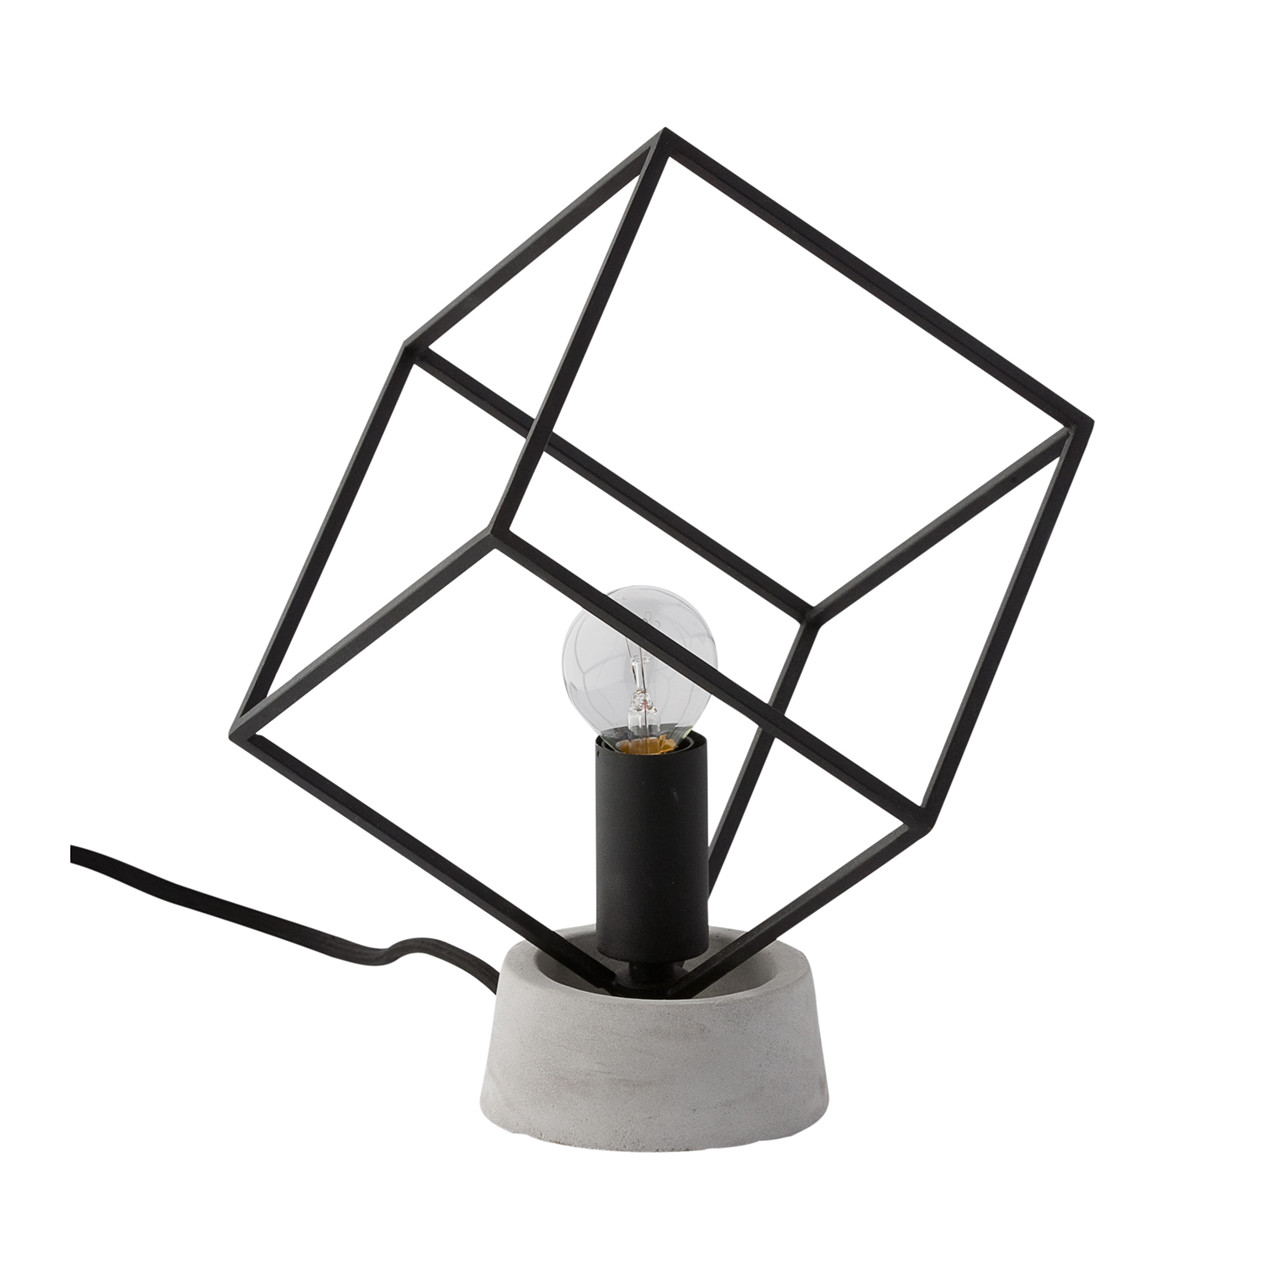 Cr ton maison cube bordlampe for Creton maison